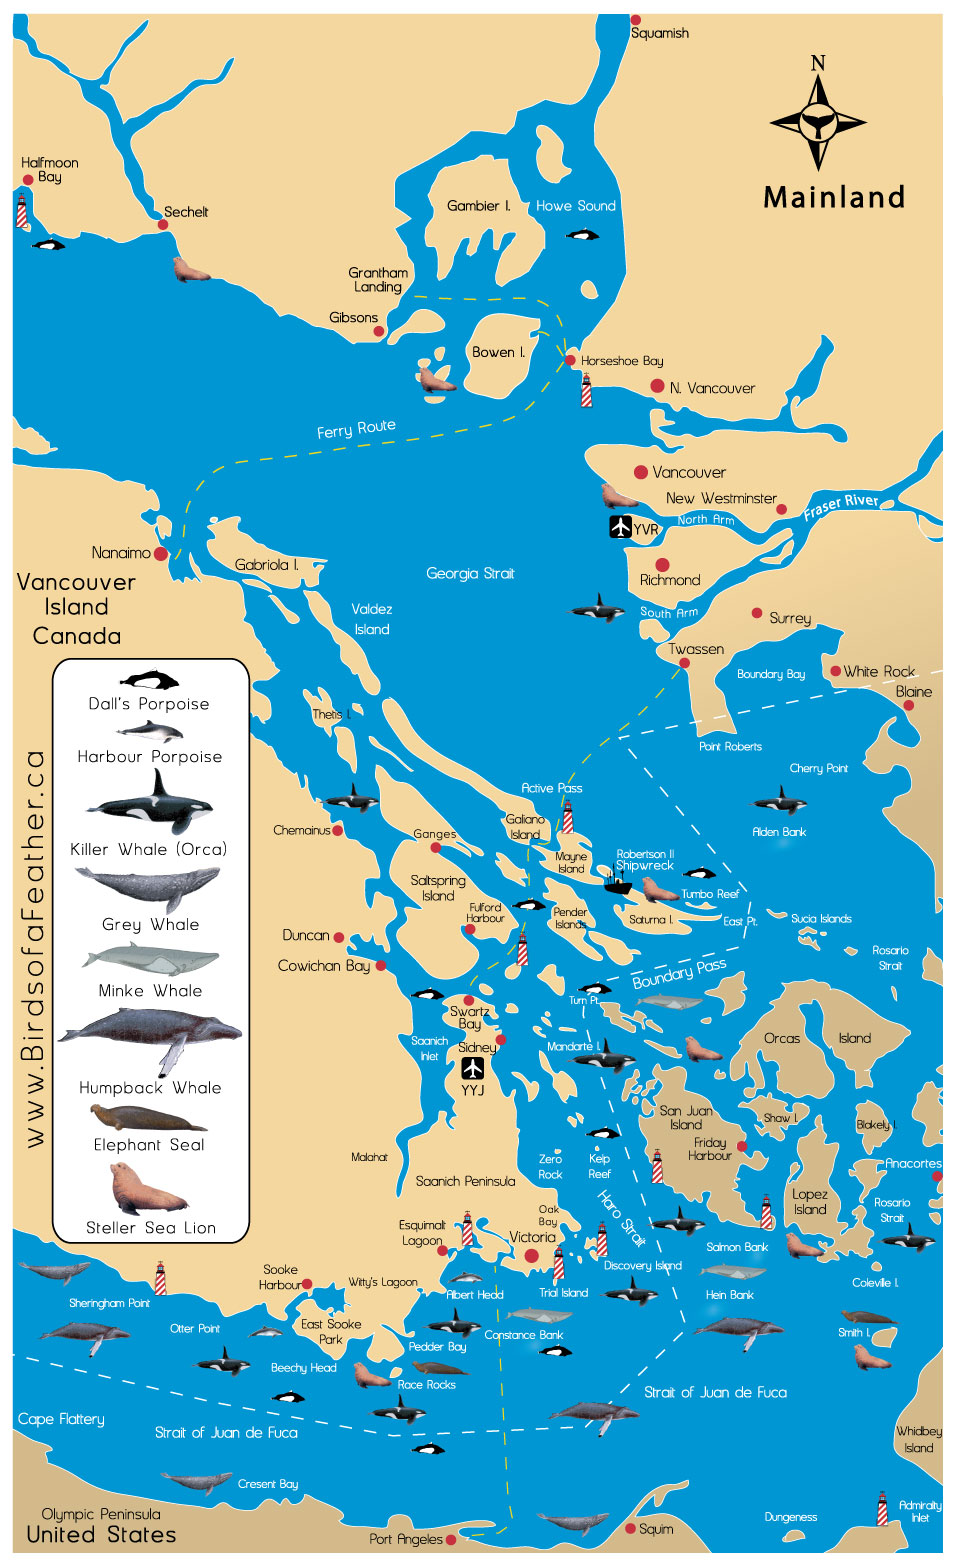 Wildlife Marine Map Zodiac Charters Vancouver Island ... on map of vaquita, map of northeastern caribbean, map of orcas, map of england, map of wild horses, map of rhinoceros, map of starfish, map of shrimp, map of uk, map of chimps, map of lobsters, map of swans, map of slot canyons, map of wales with towns and cities, map of scotland, map of shark finning, map of icebergs, map of wales united kingdom, map of octopus,